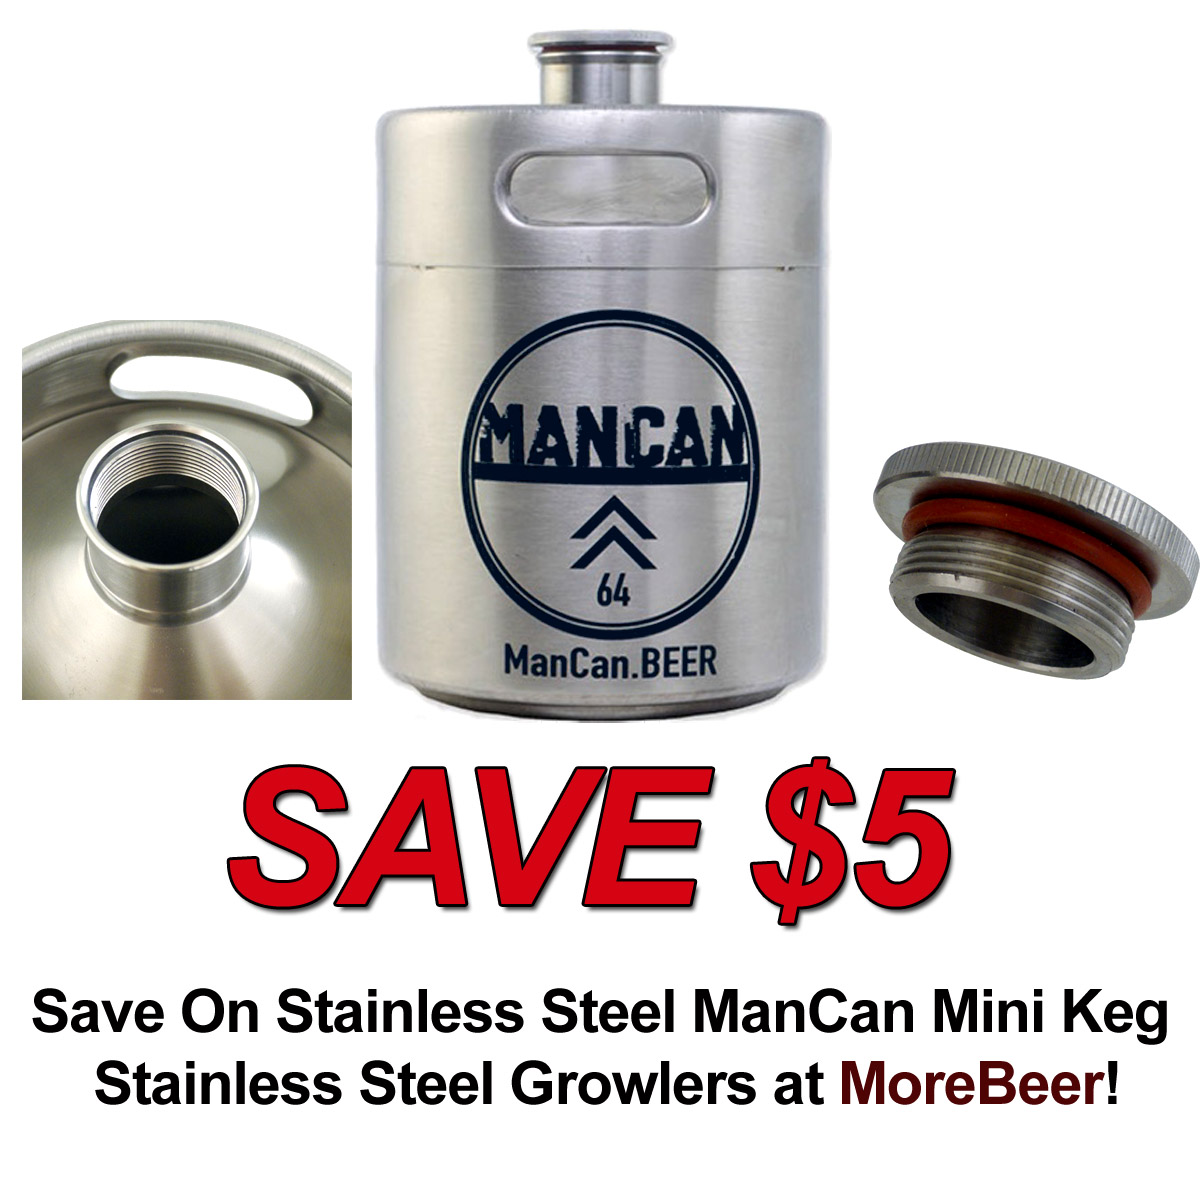 Coupon Code For Save $5 On a Stainless Steel ManCan Mini Keg Growler Coupon Code